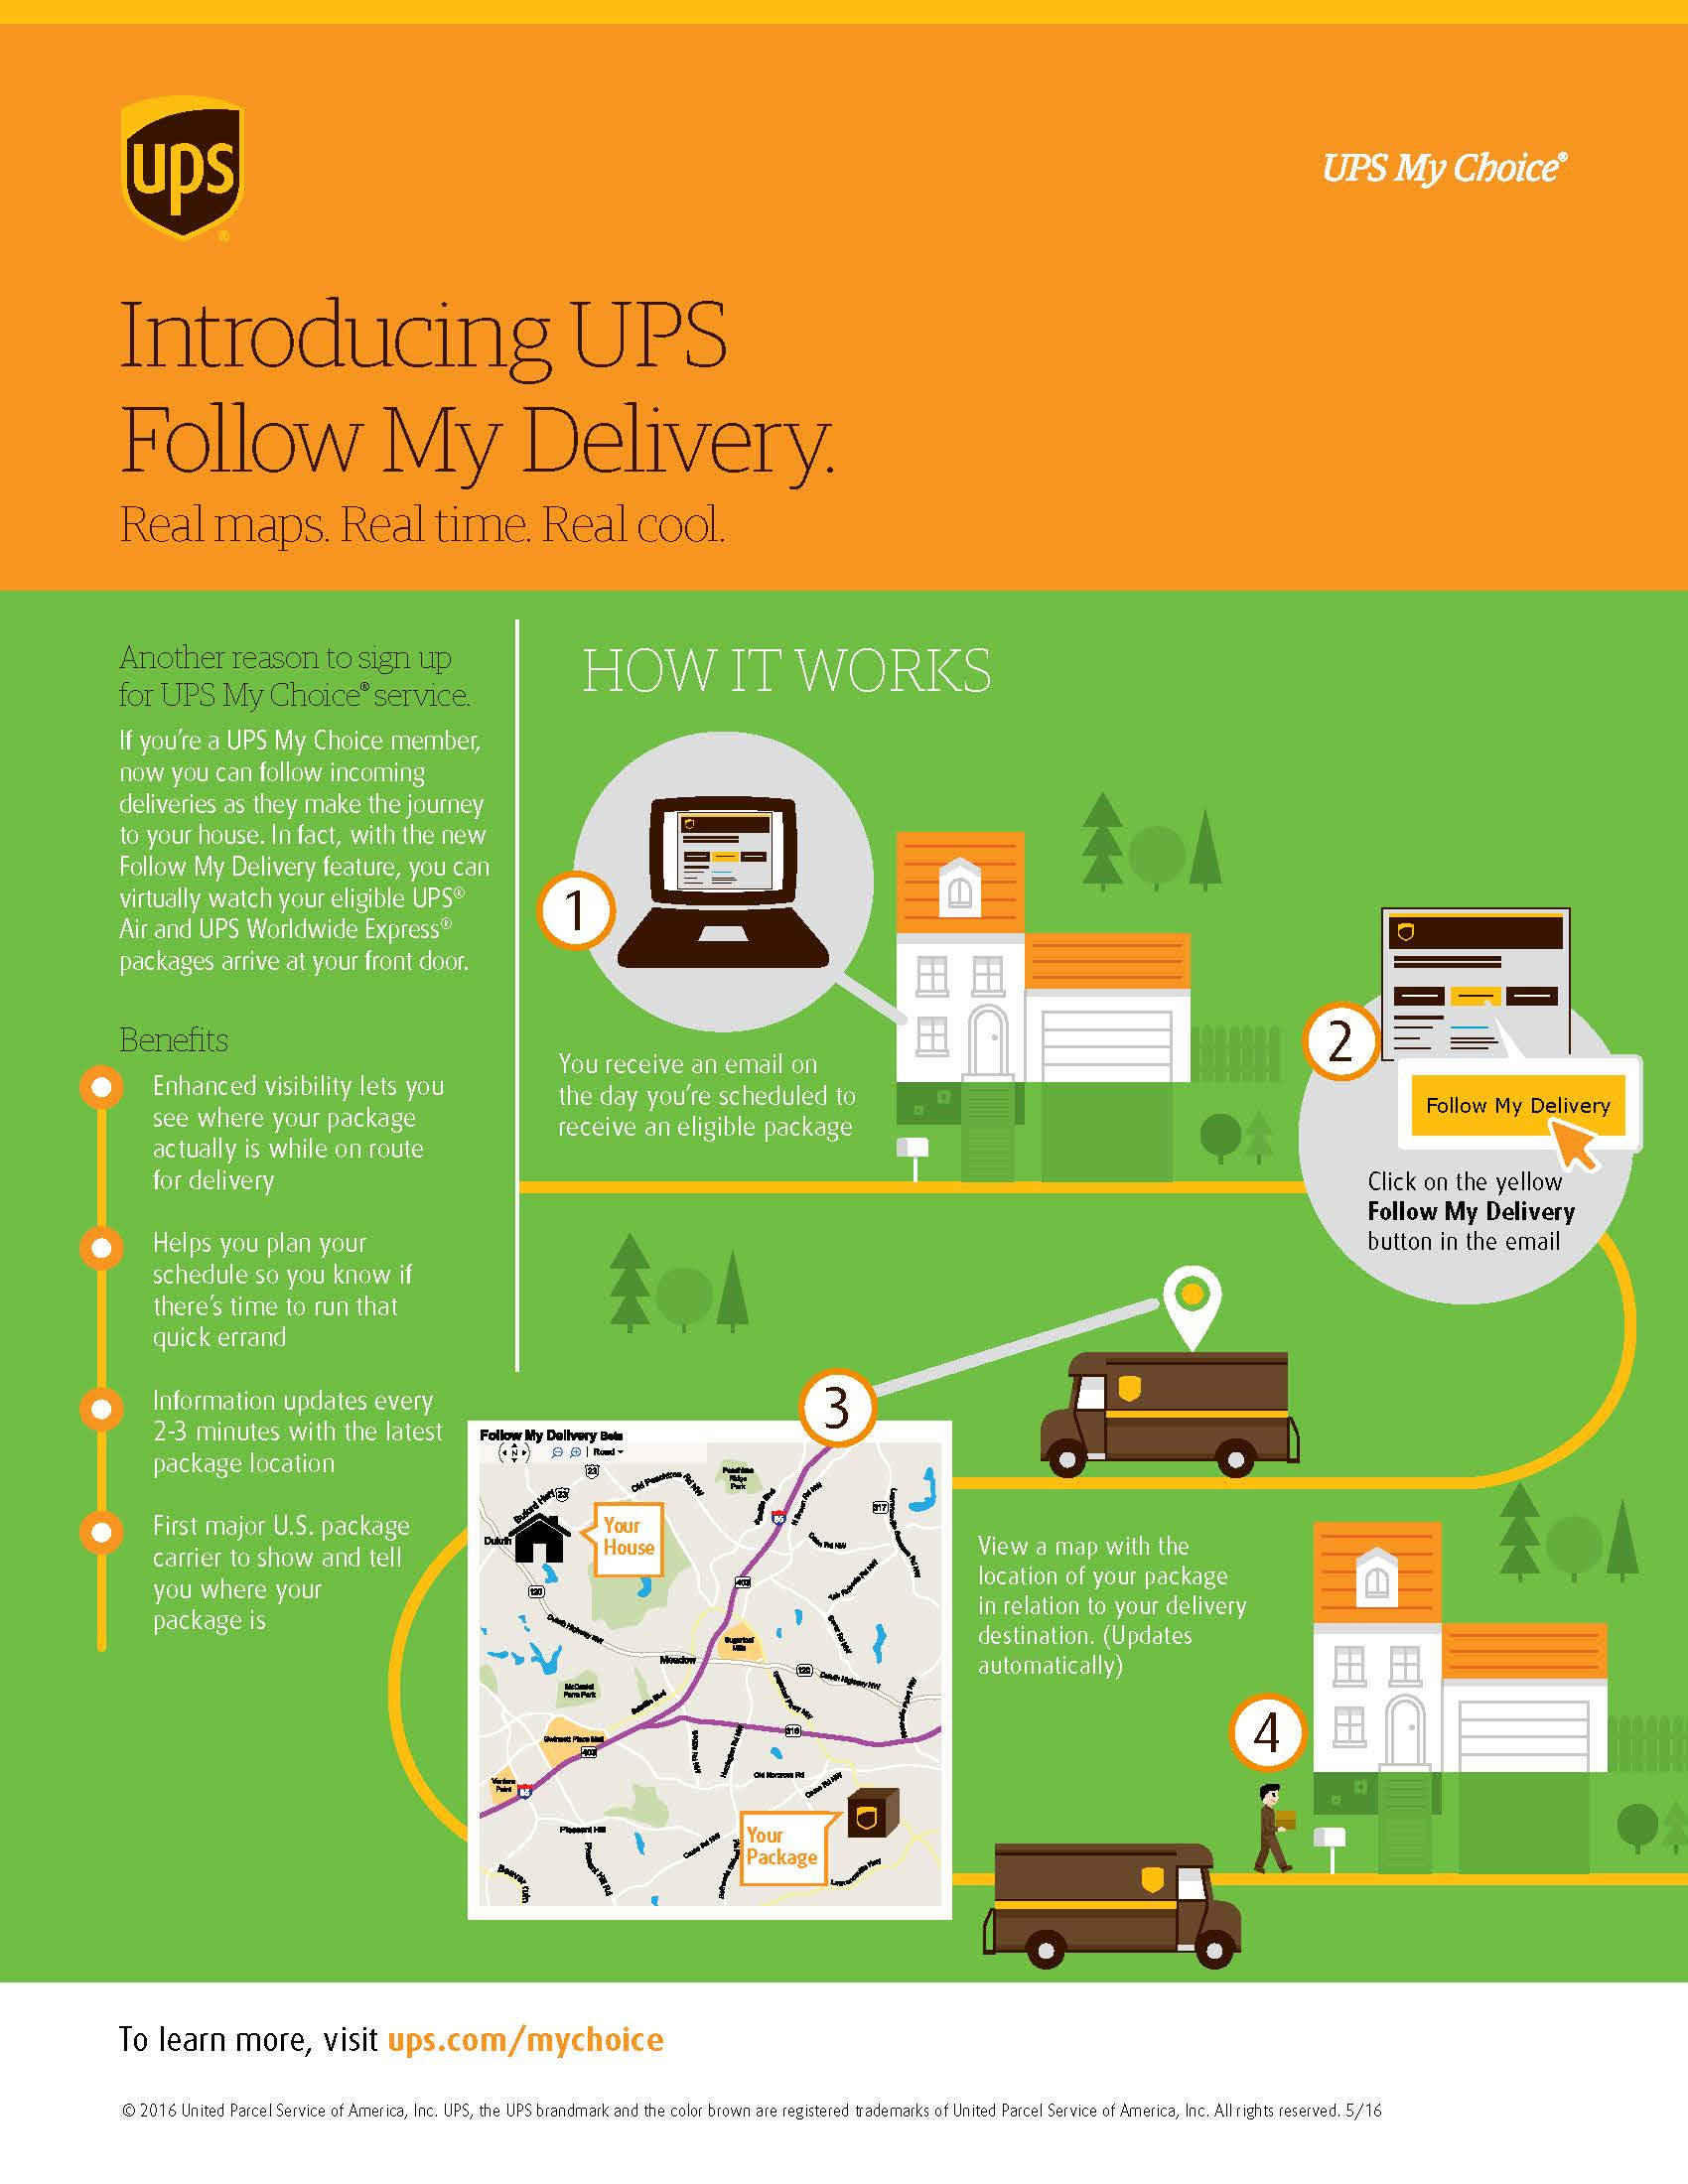 Check On UPS Delivery Progress with New Follow My Delivery